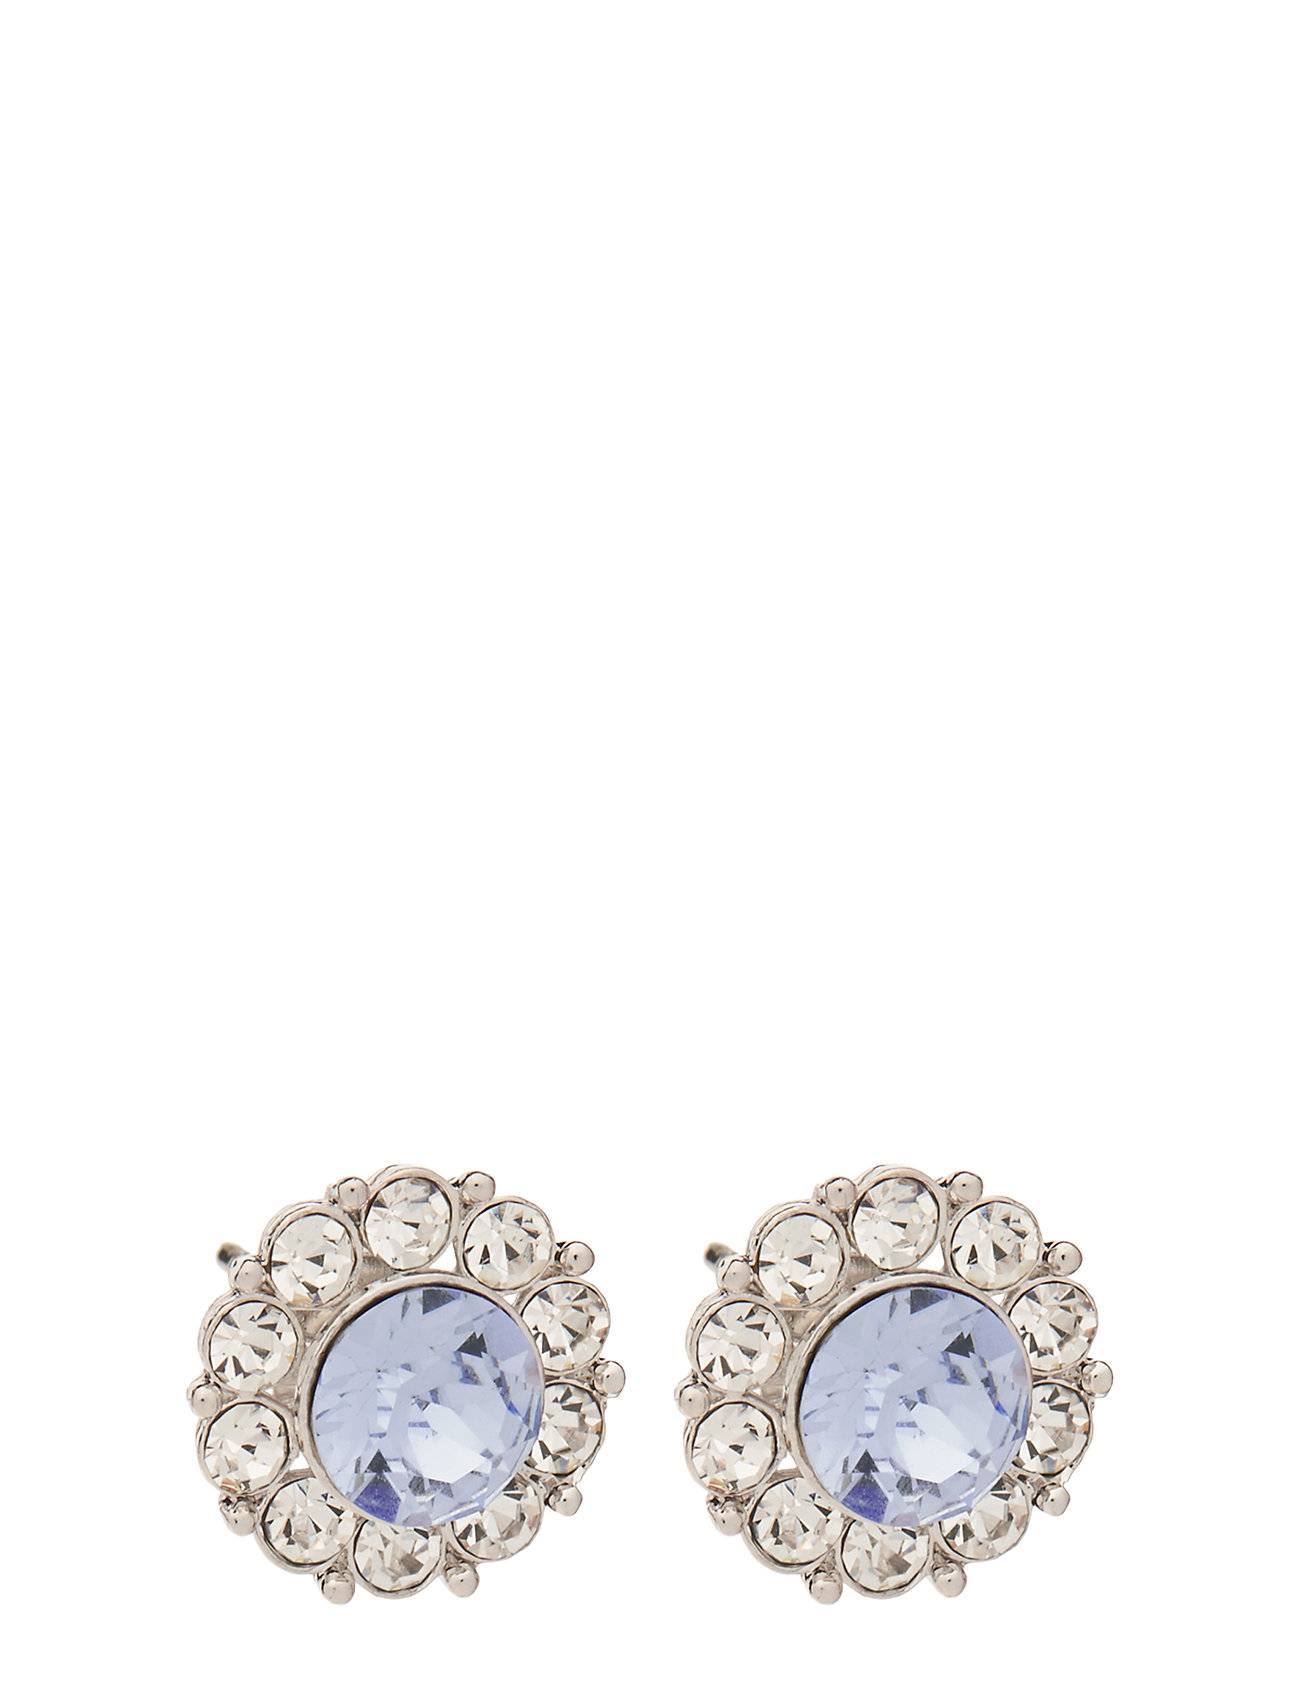 LILY AND ROSE Miss Sofia Earrings - Light Sapphire Accessories Jewellery Earrings Studs Sininen LILY AND ROSE